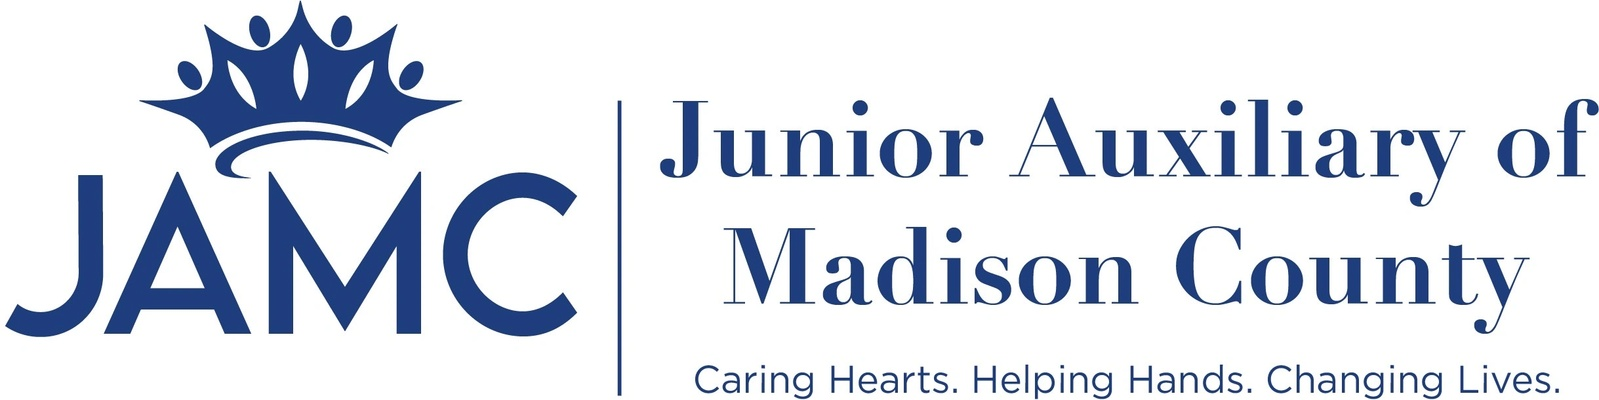 Junior Auxiliary of Madison County